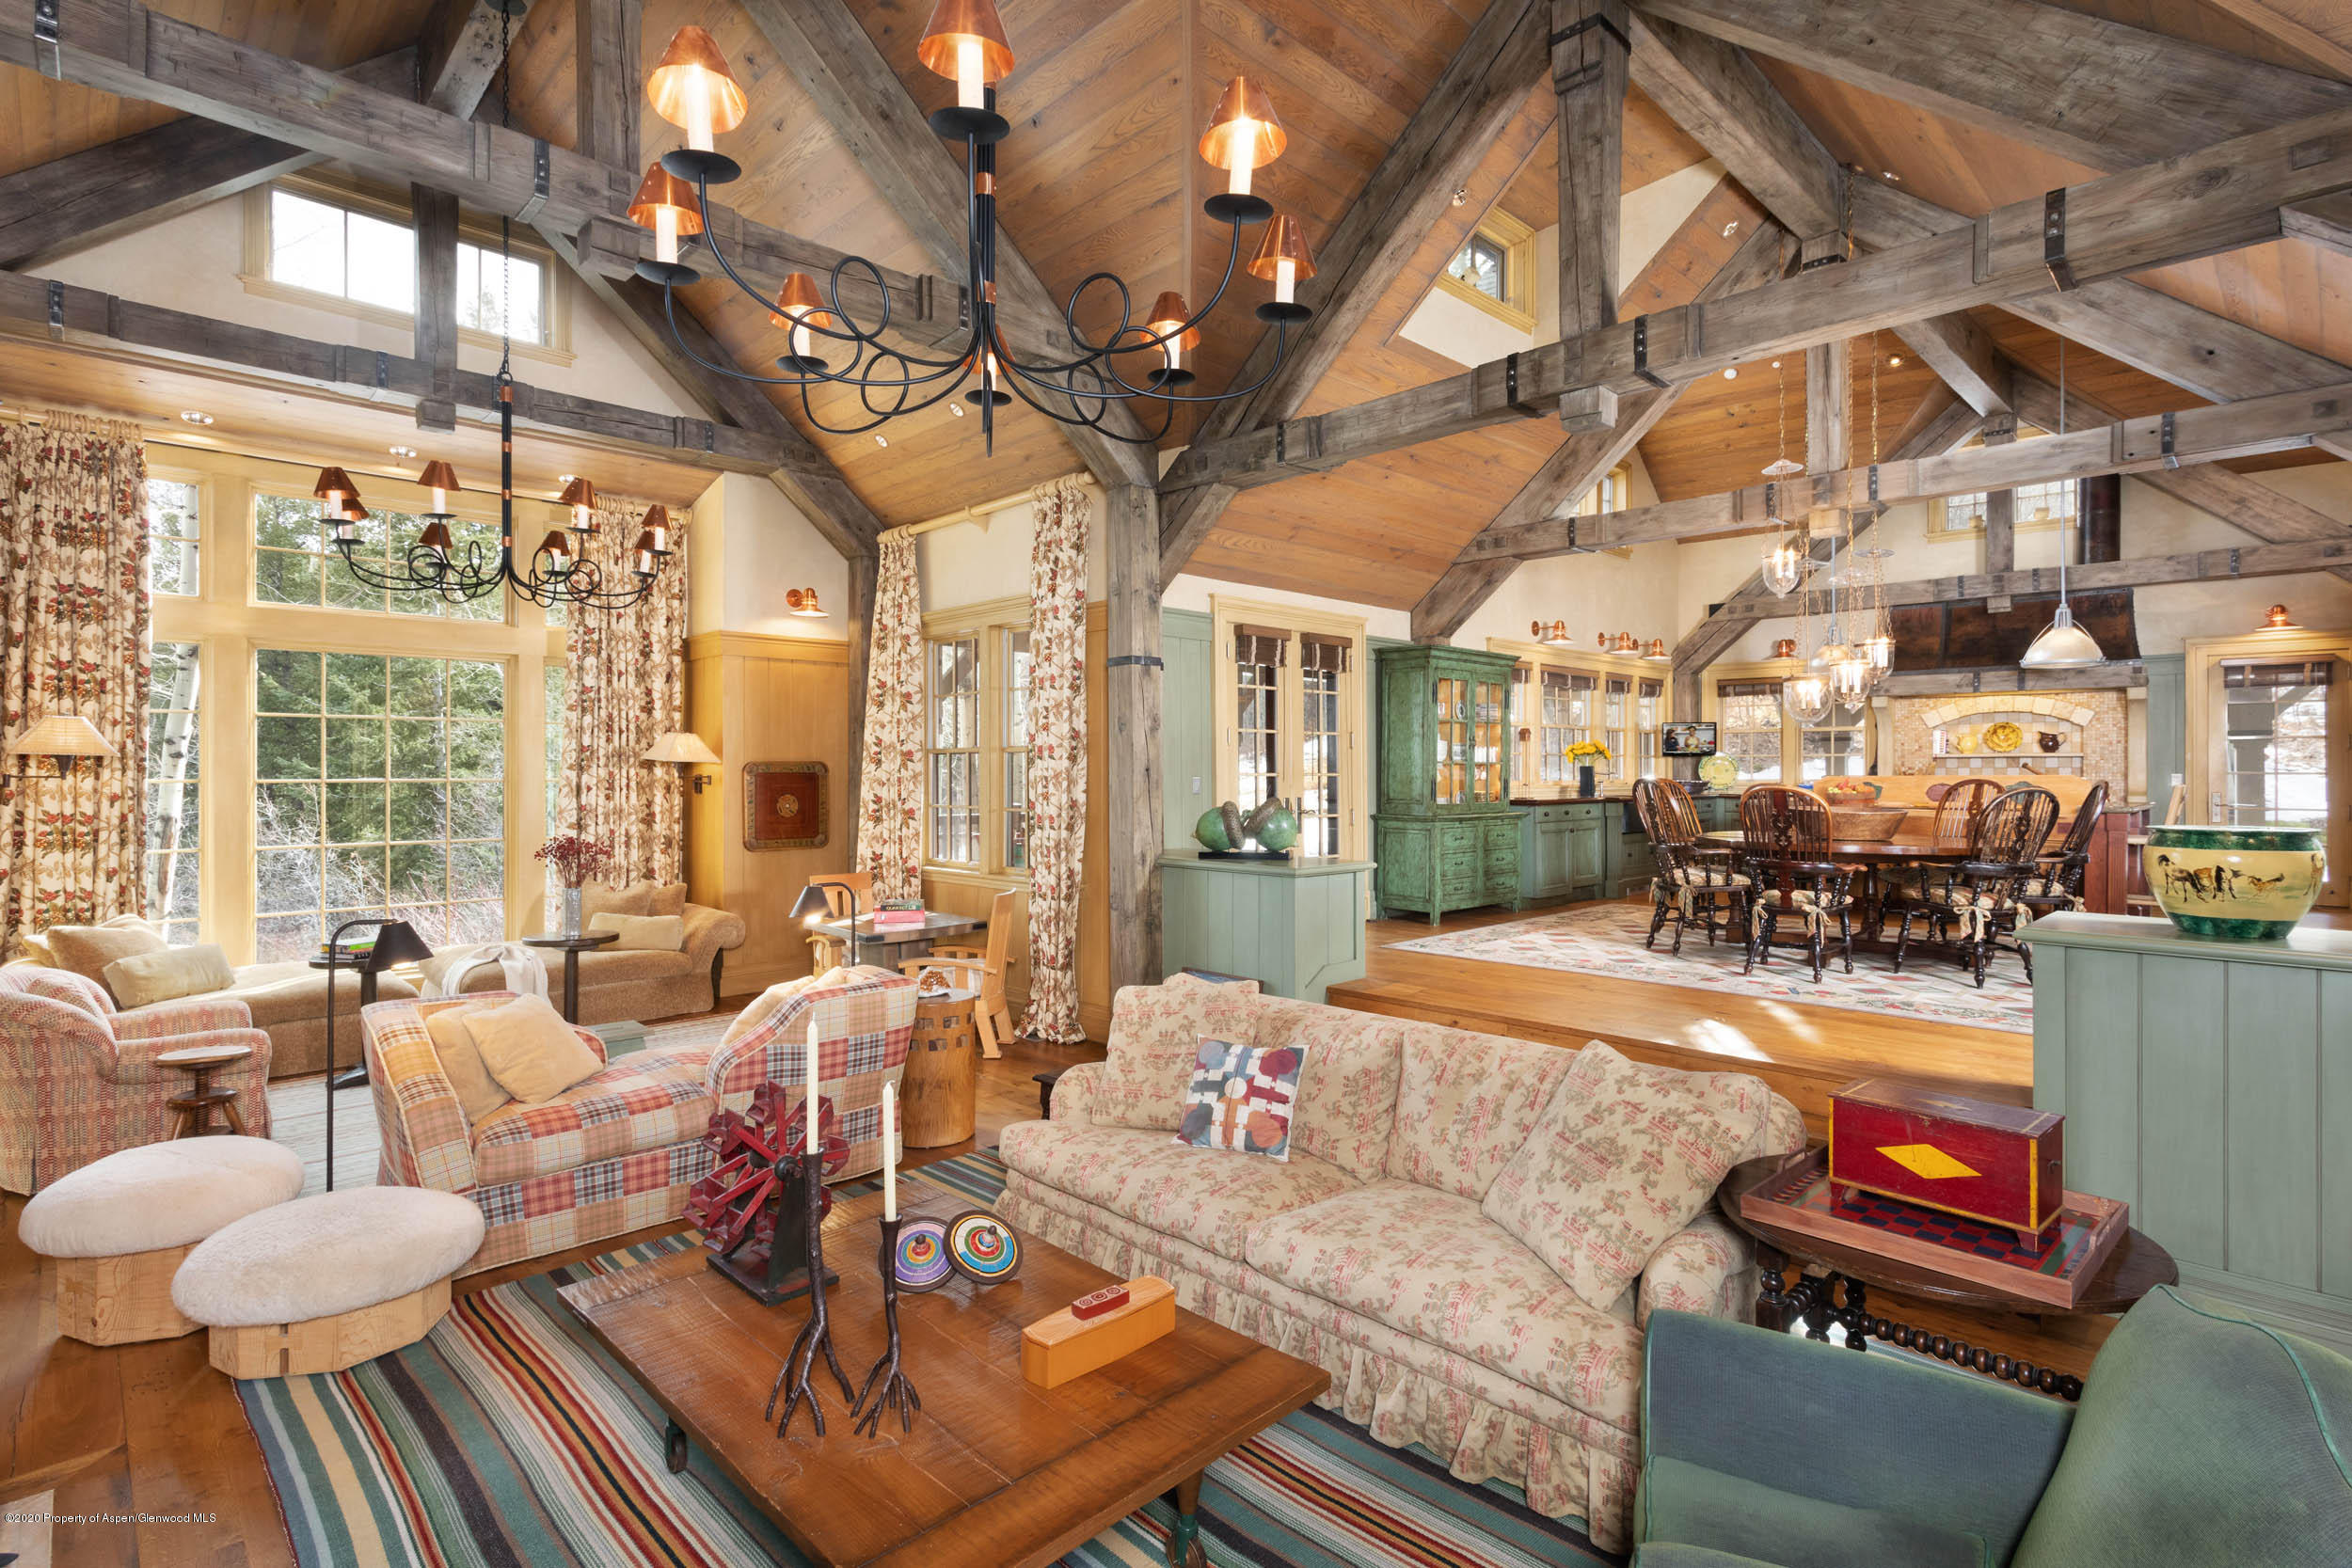 French oak ceilings; woodburning fireplace. Reclaimed wood floors and beams.